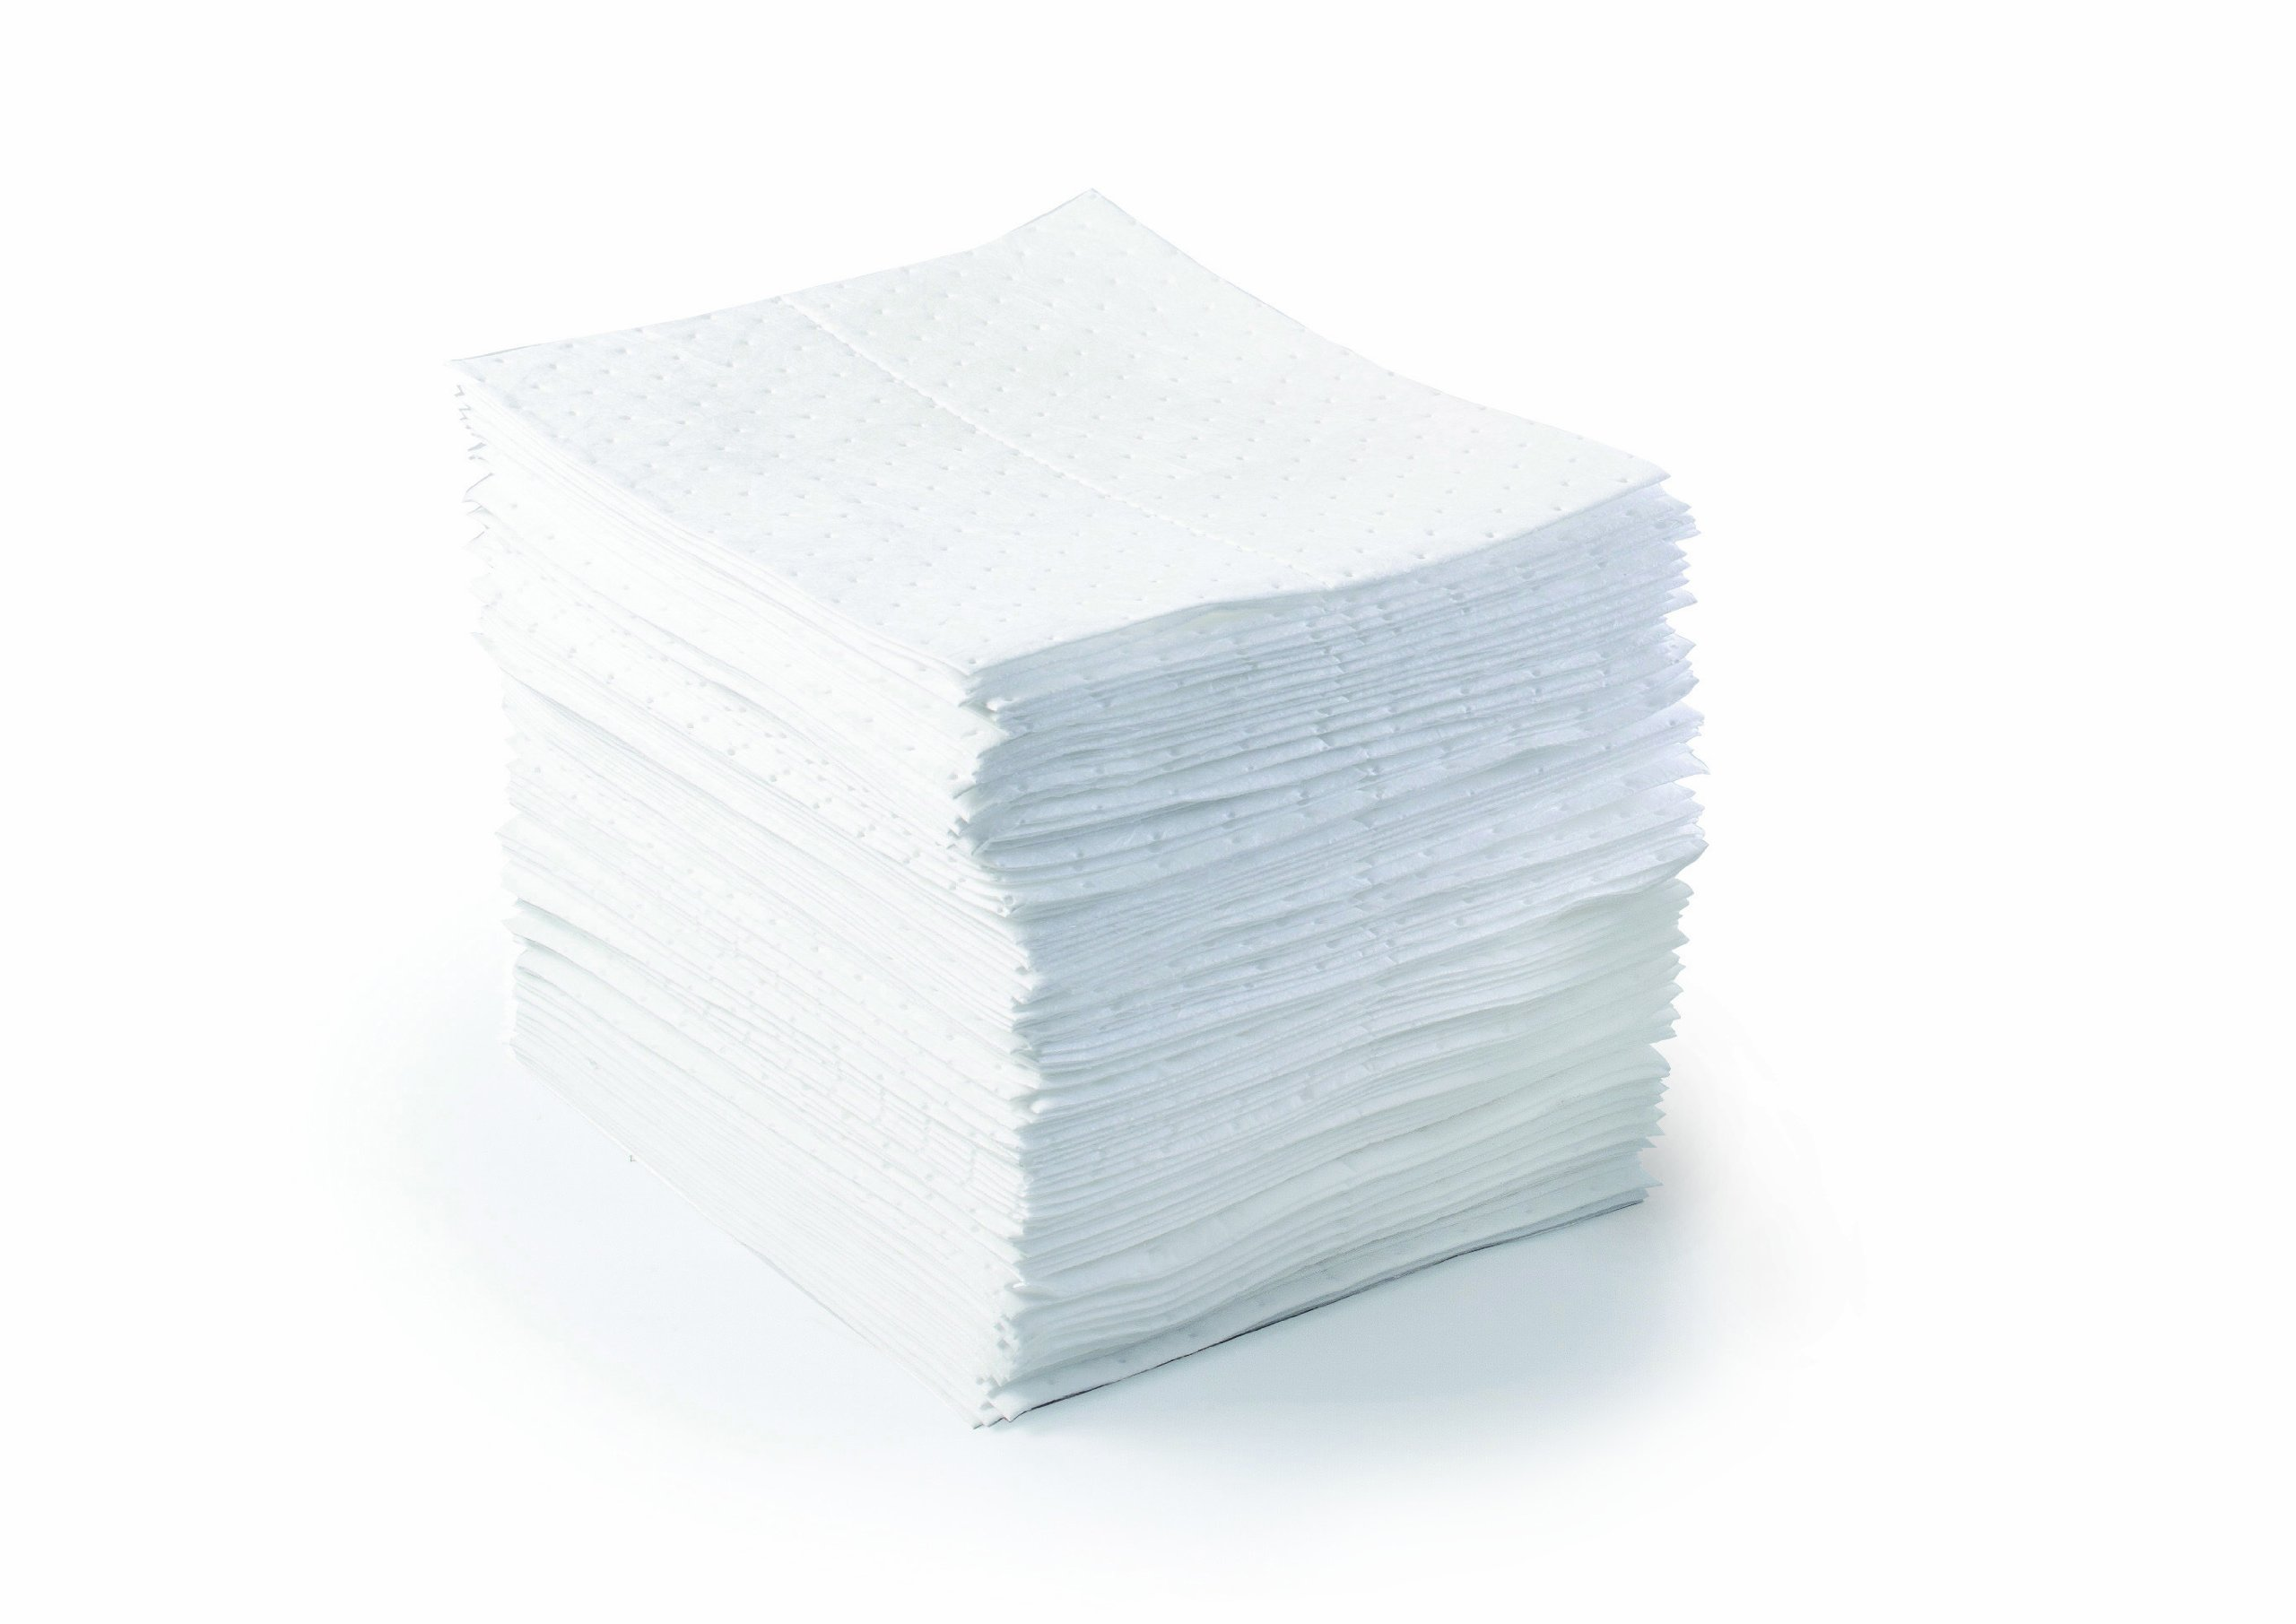 SPC BPO500 BASIC 17'' Length, 15'' Width, White Color Oil Only Light Weight Pad (100 Per Bale) by Brady SPC